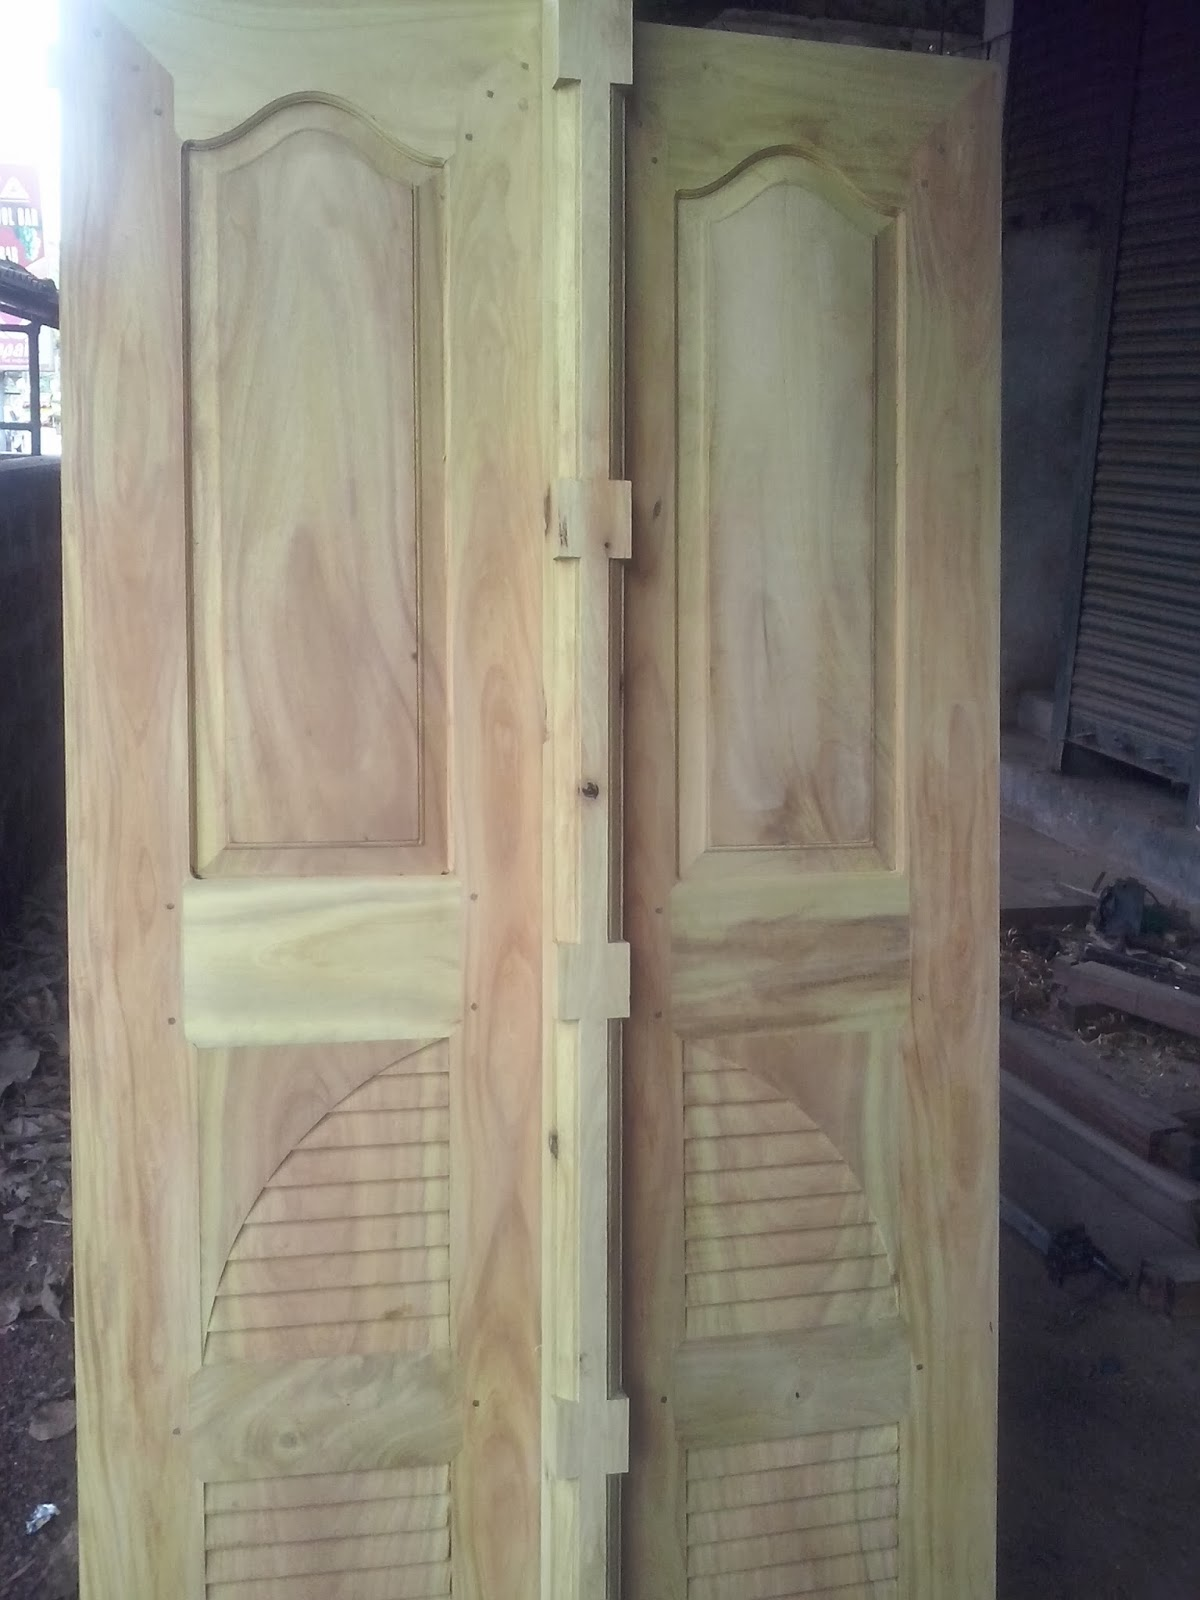 Bavas wood works main entrance wooden double door designs for Wooden door designs for houses